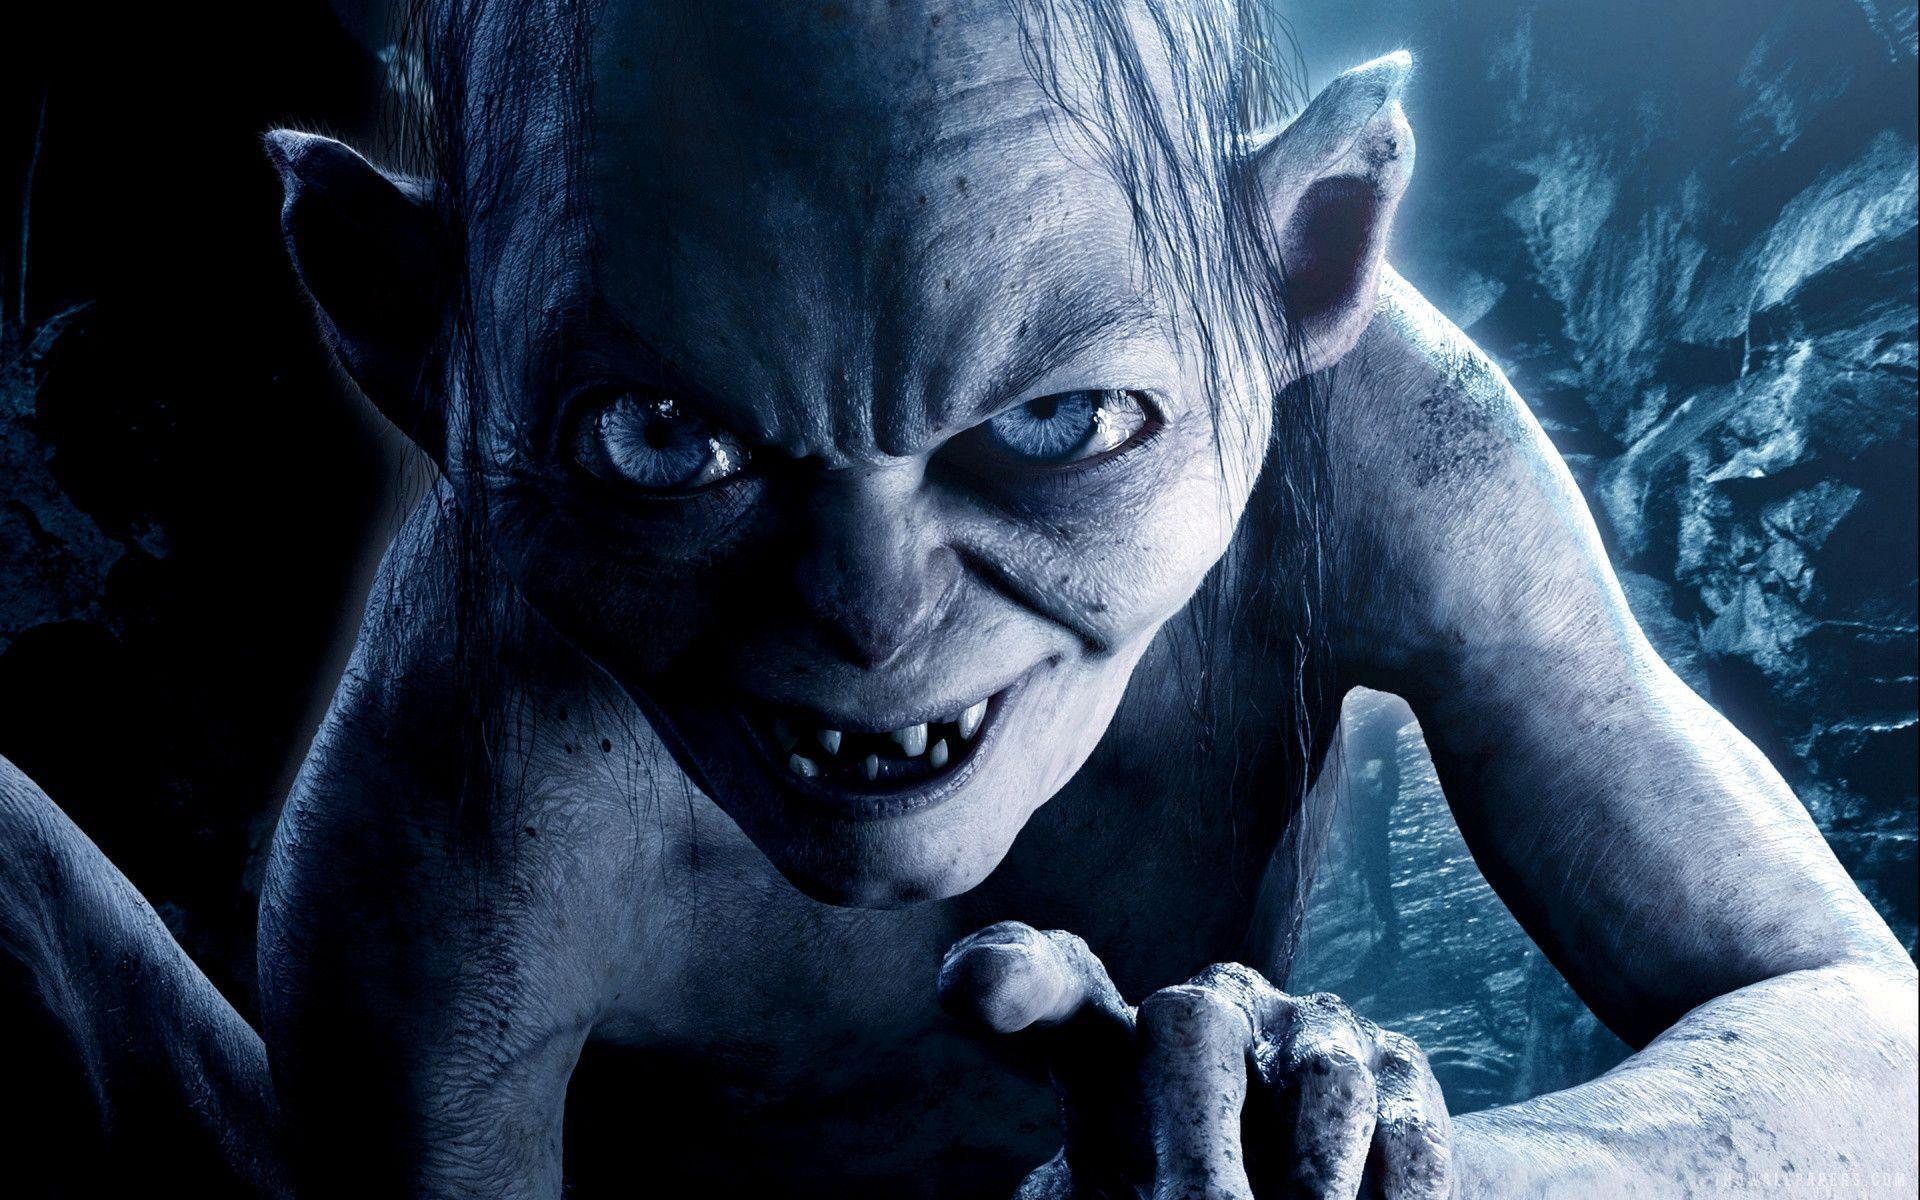 Gollum The Hobbit Wallpaper